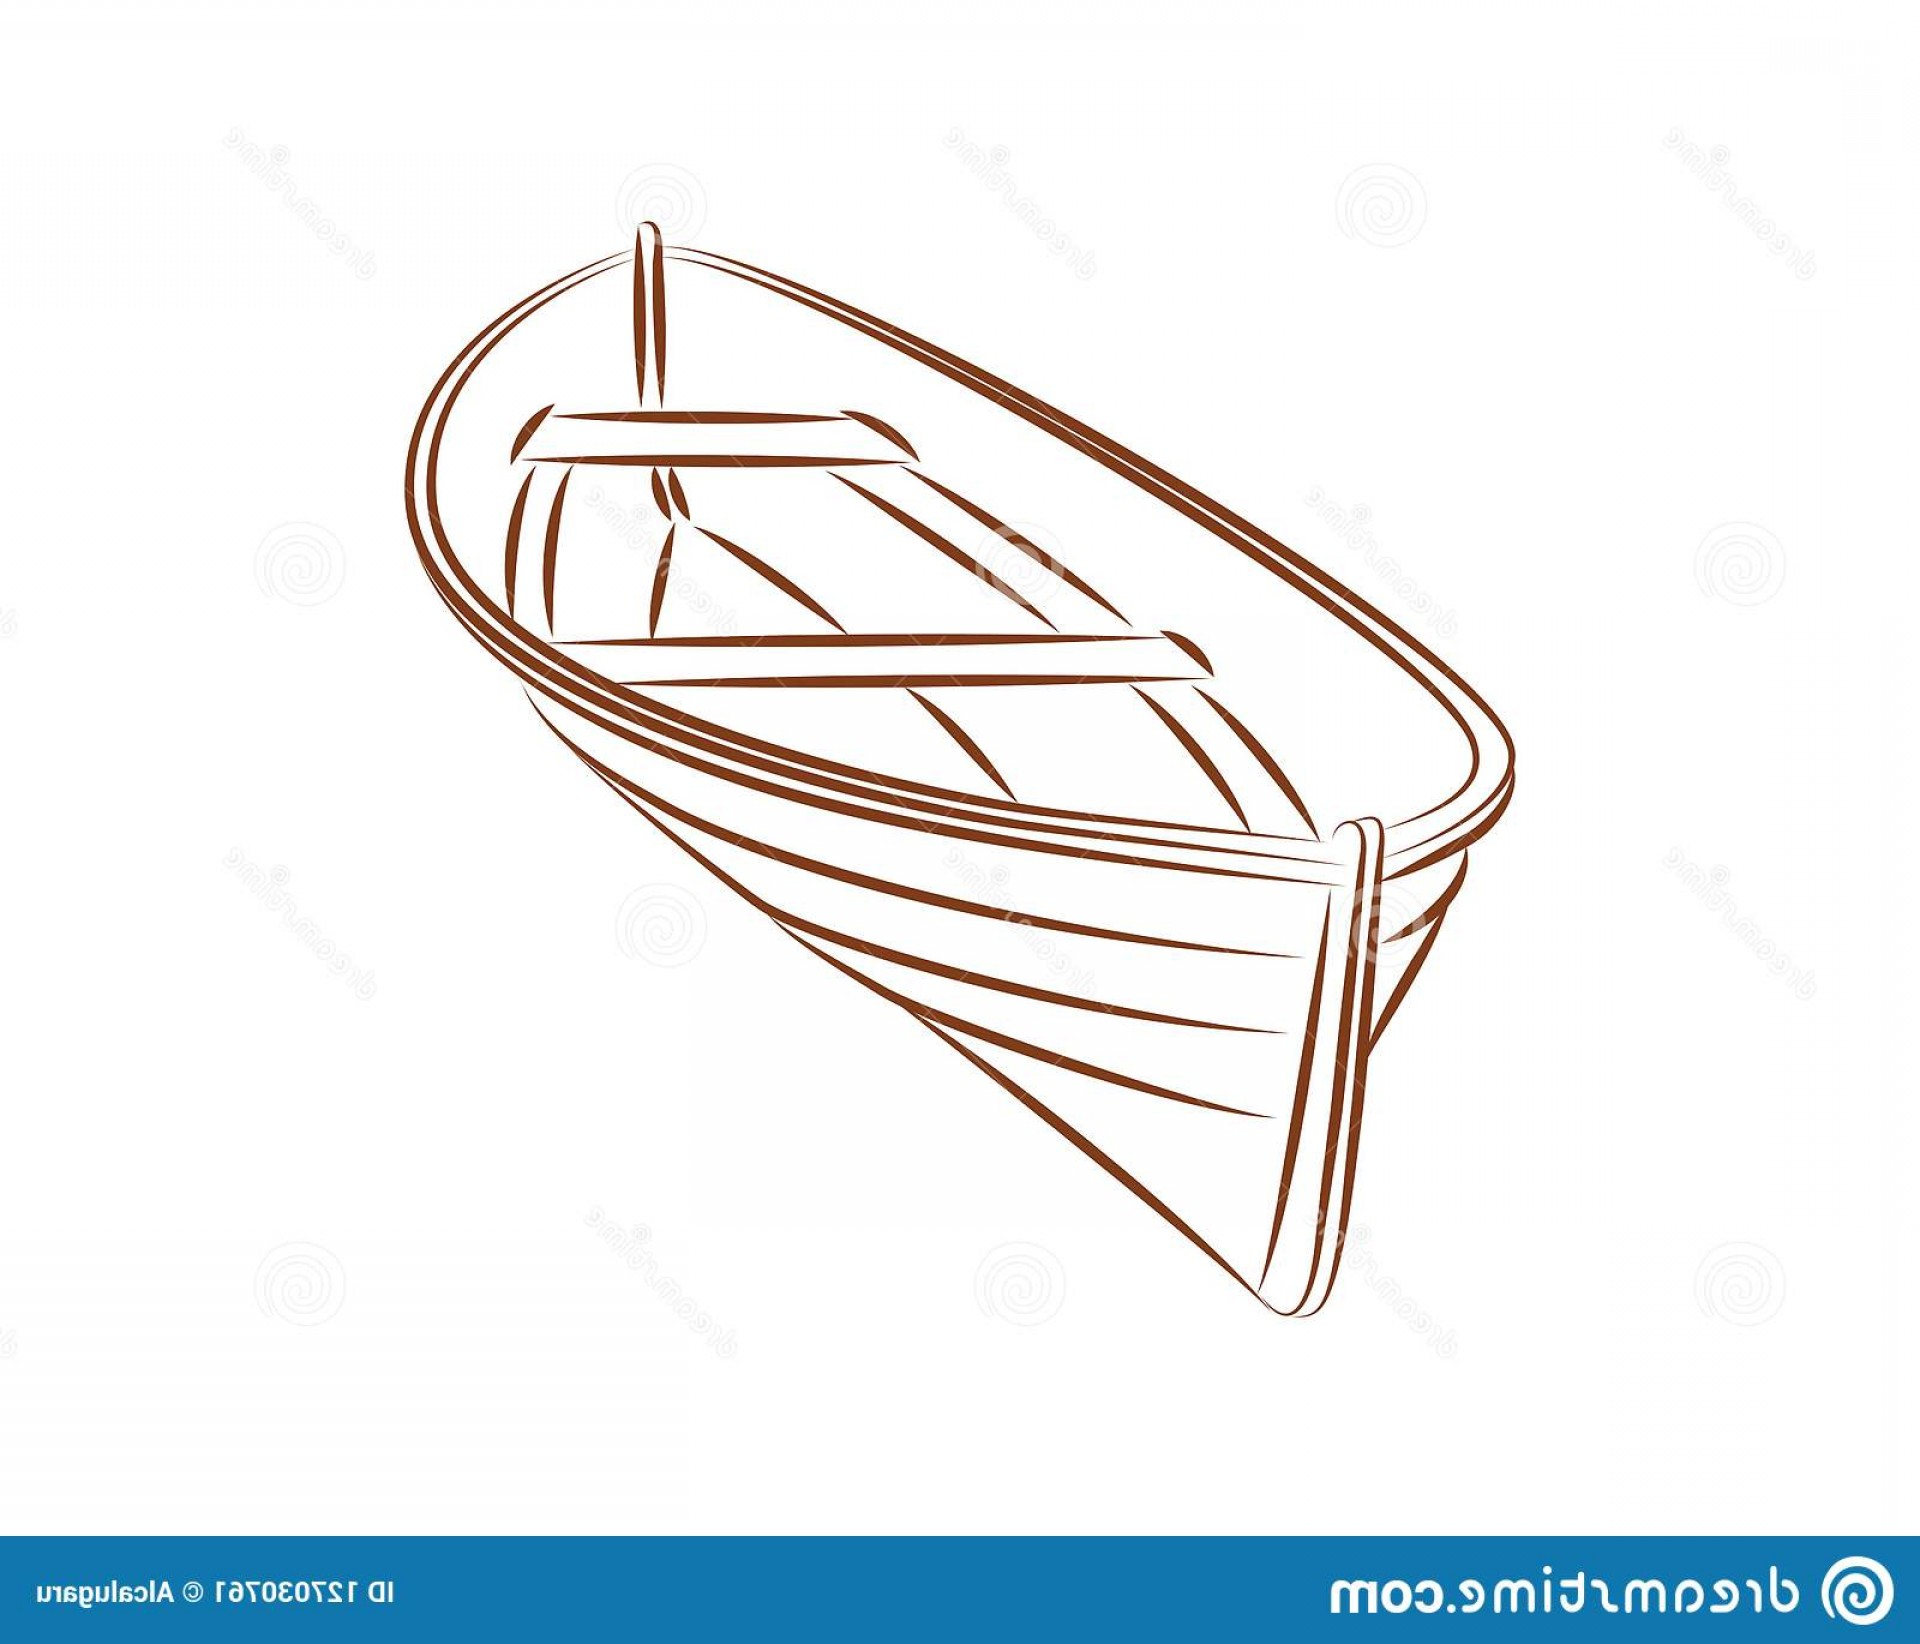 Boat Vector Art Graphics: Wood Boat Vector Line Simple Brown Wooden Boat Vector Icon Illustration Line Graphic Drawing Symbol Ship Art Image